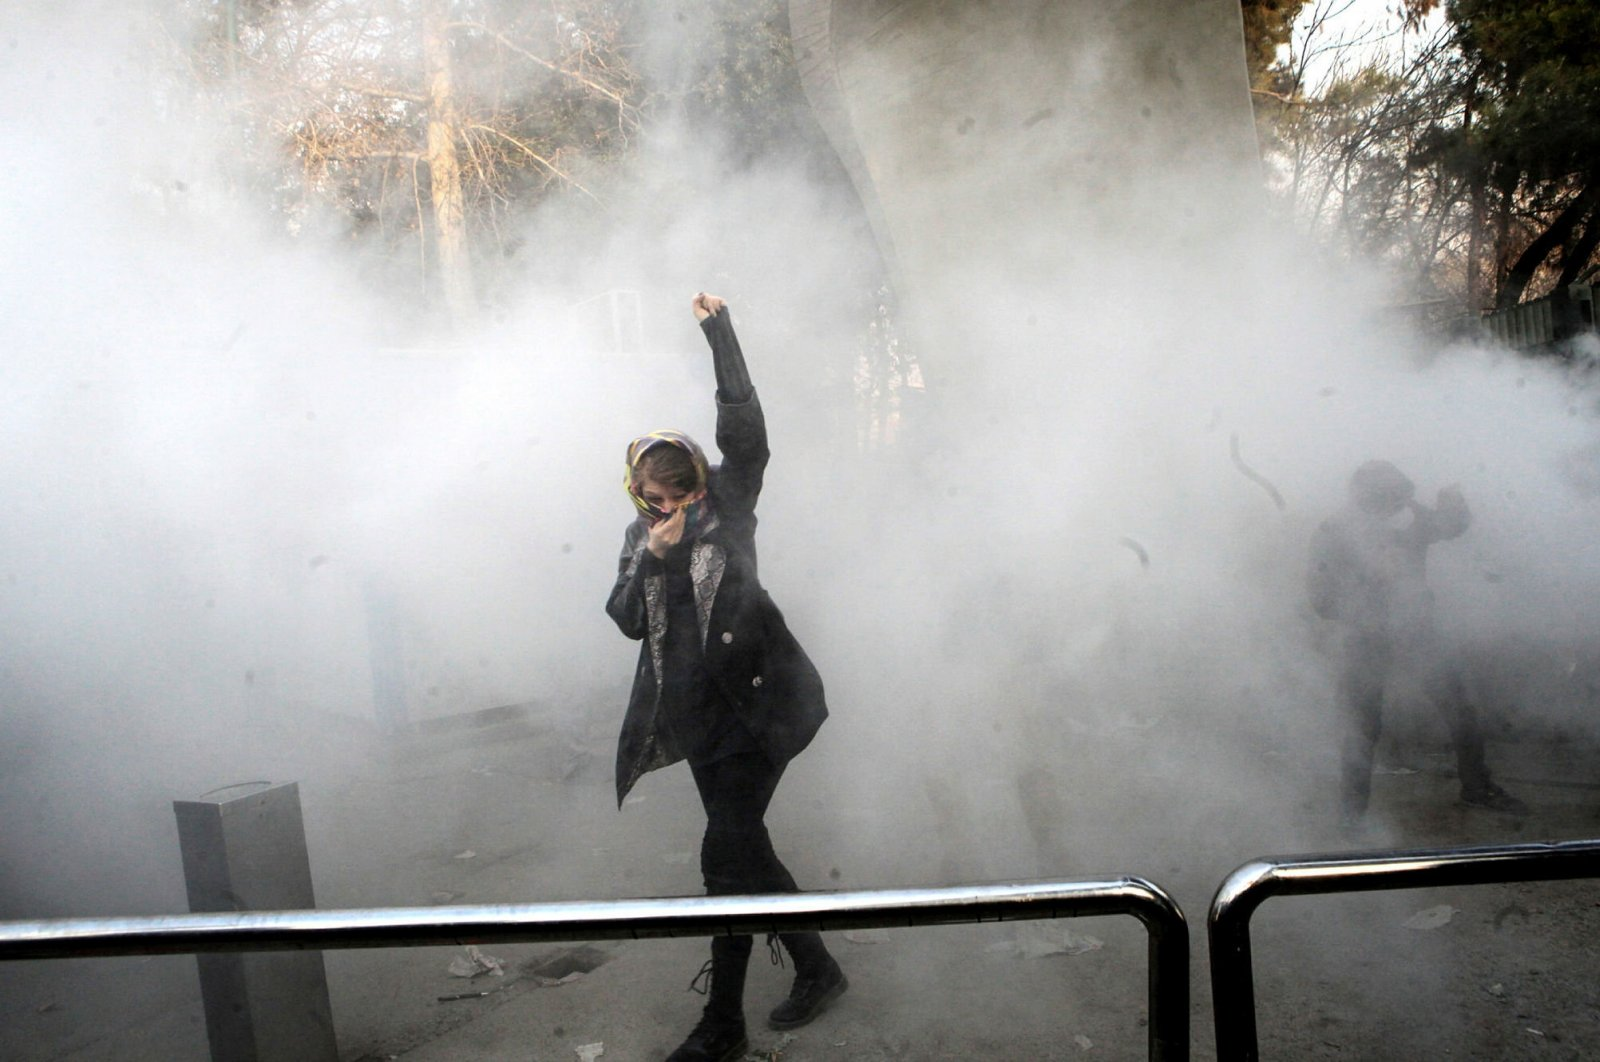 A woman raises his fist amid smoke during an anti-government protest in Iran. (Archive Photo)